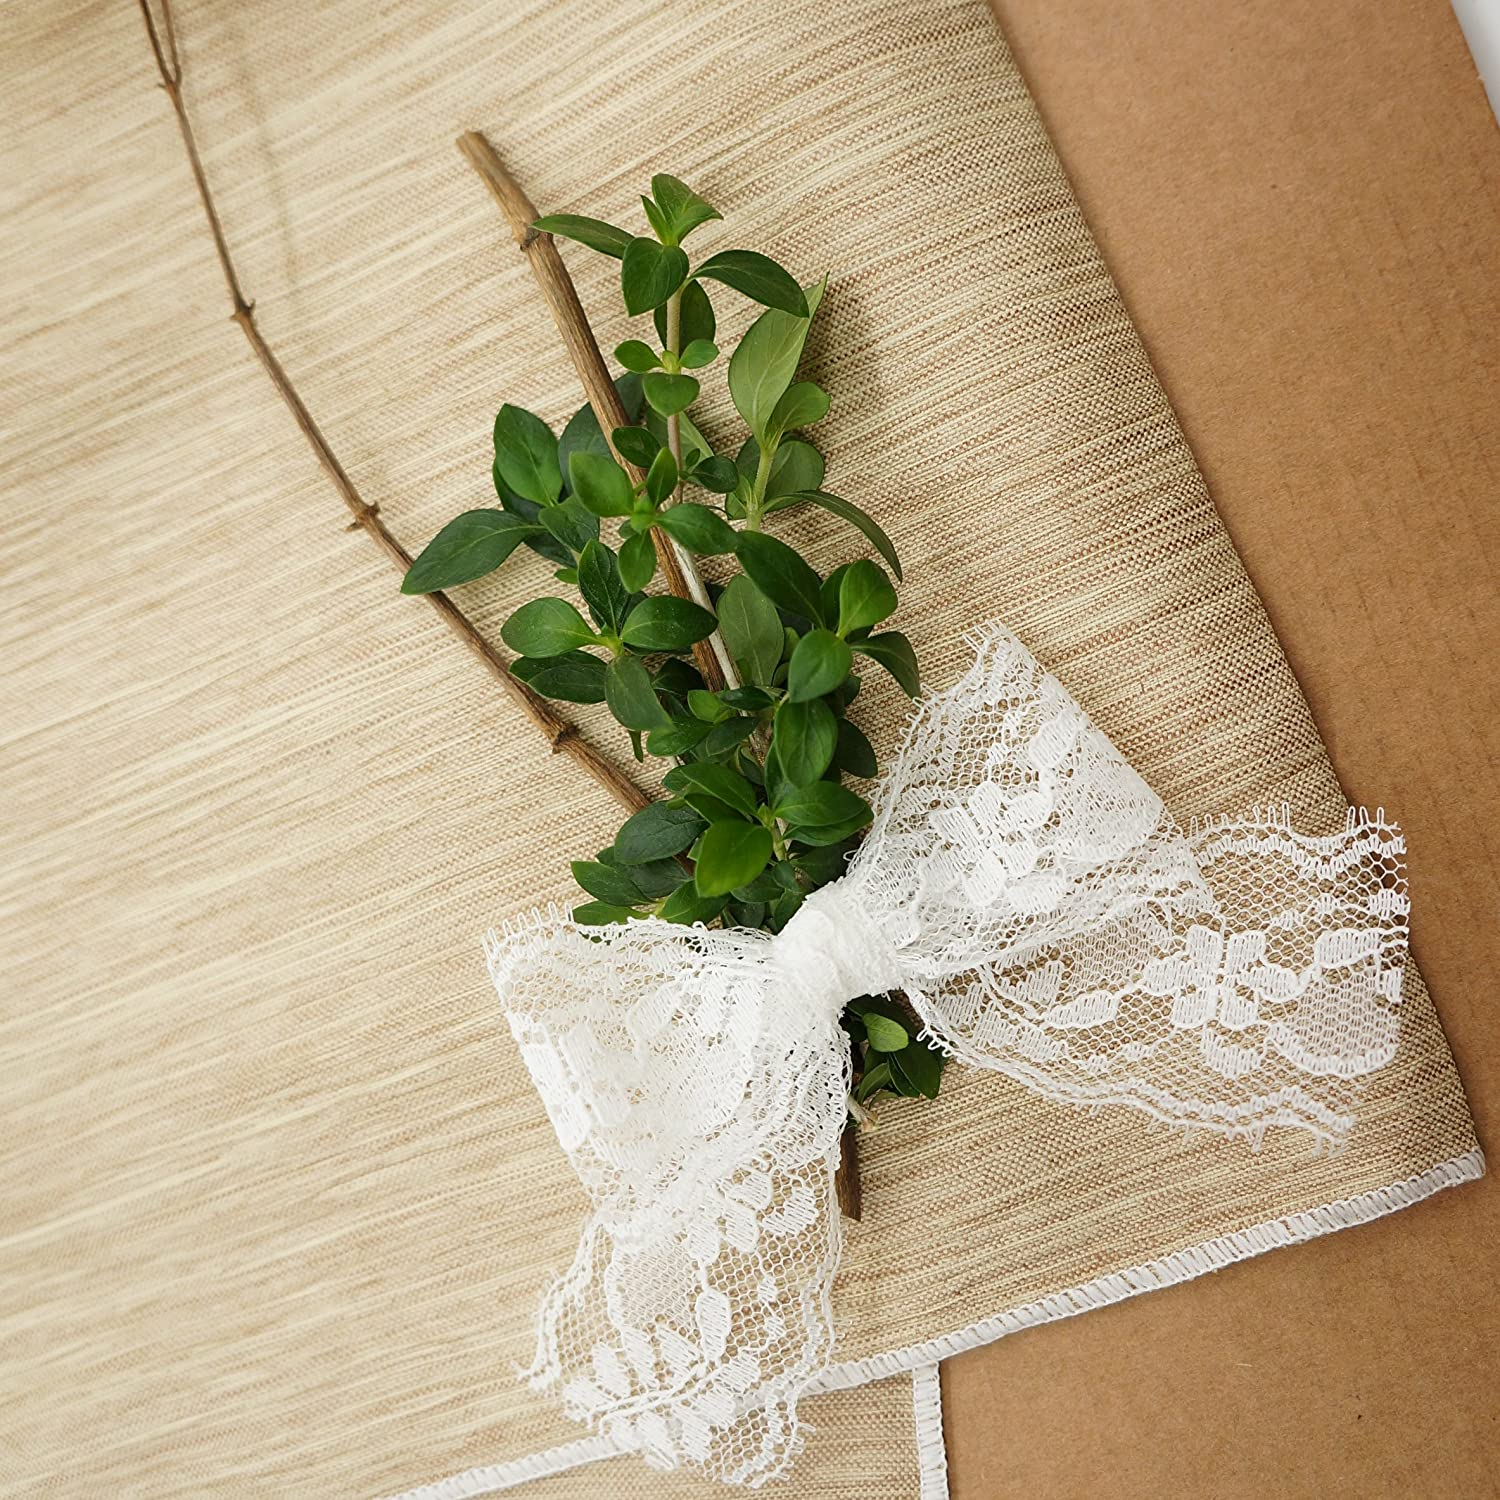 1.5 Floral Lace Trimming Bridal Wedding Baby Shower. X 20 Yards Wedding White Lace Ribbon Sewing 38mm Gift Table Tops Card Boxes